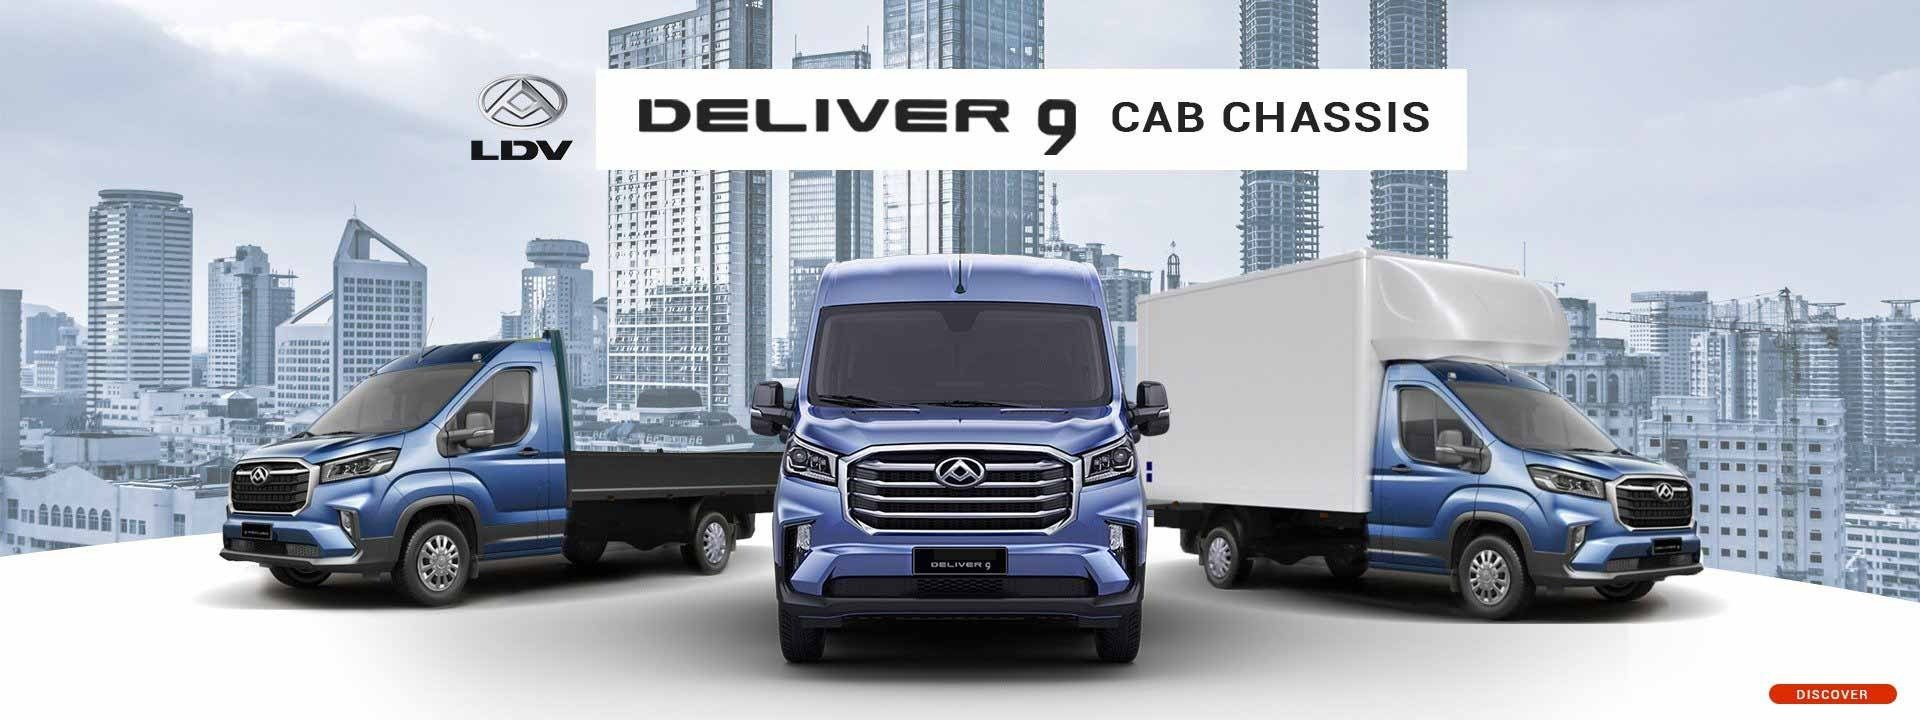 LDV_deliver_9_cab_chassis